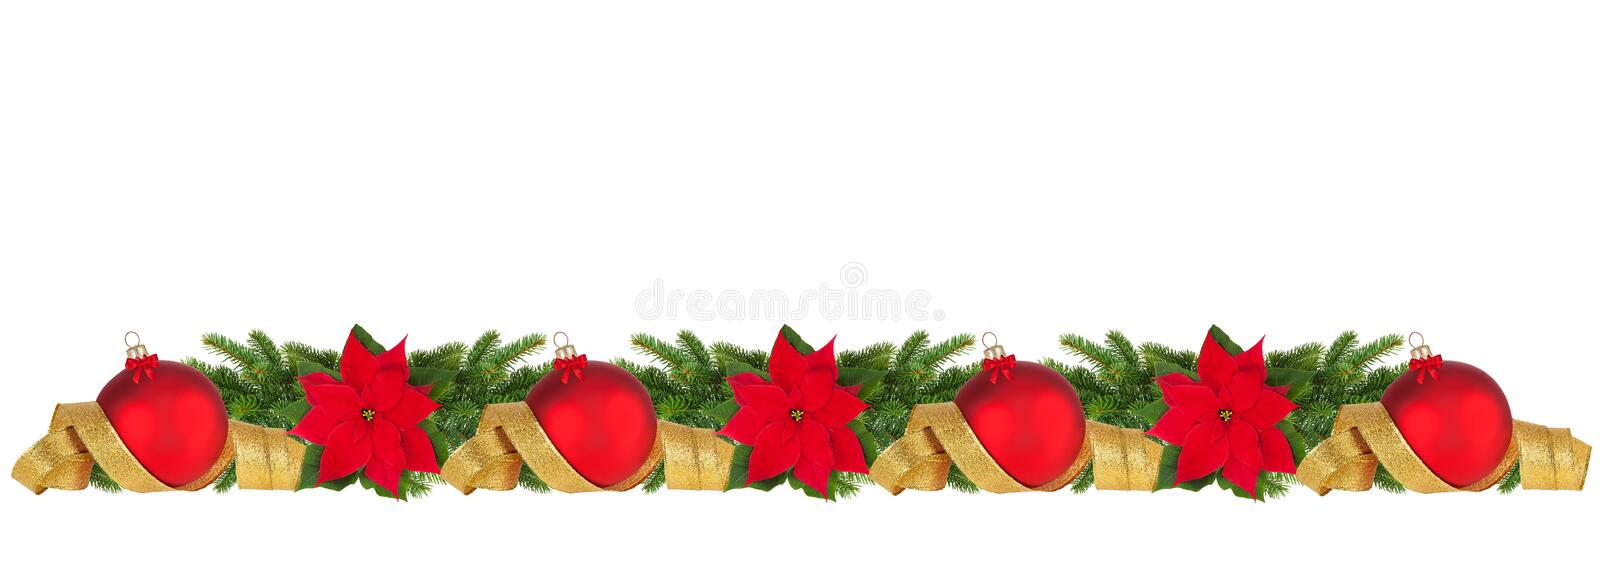 Horizontal christmas border stock photo image